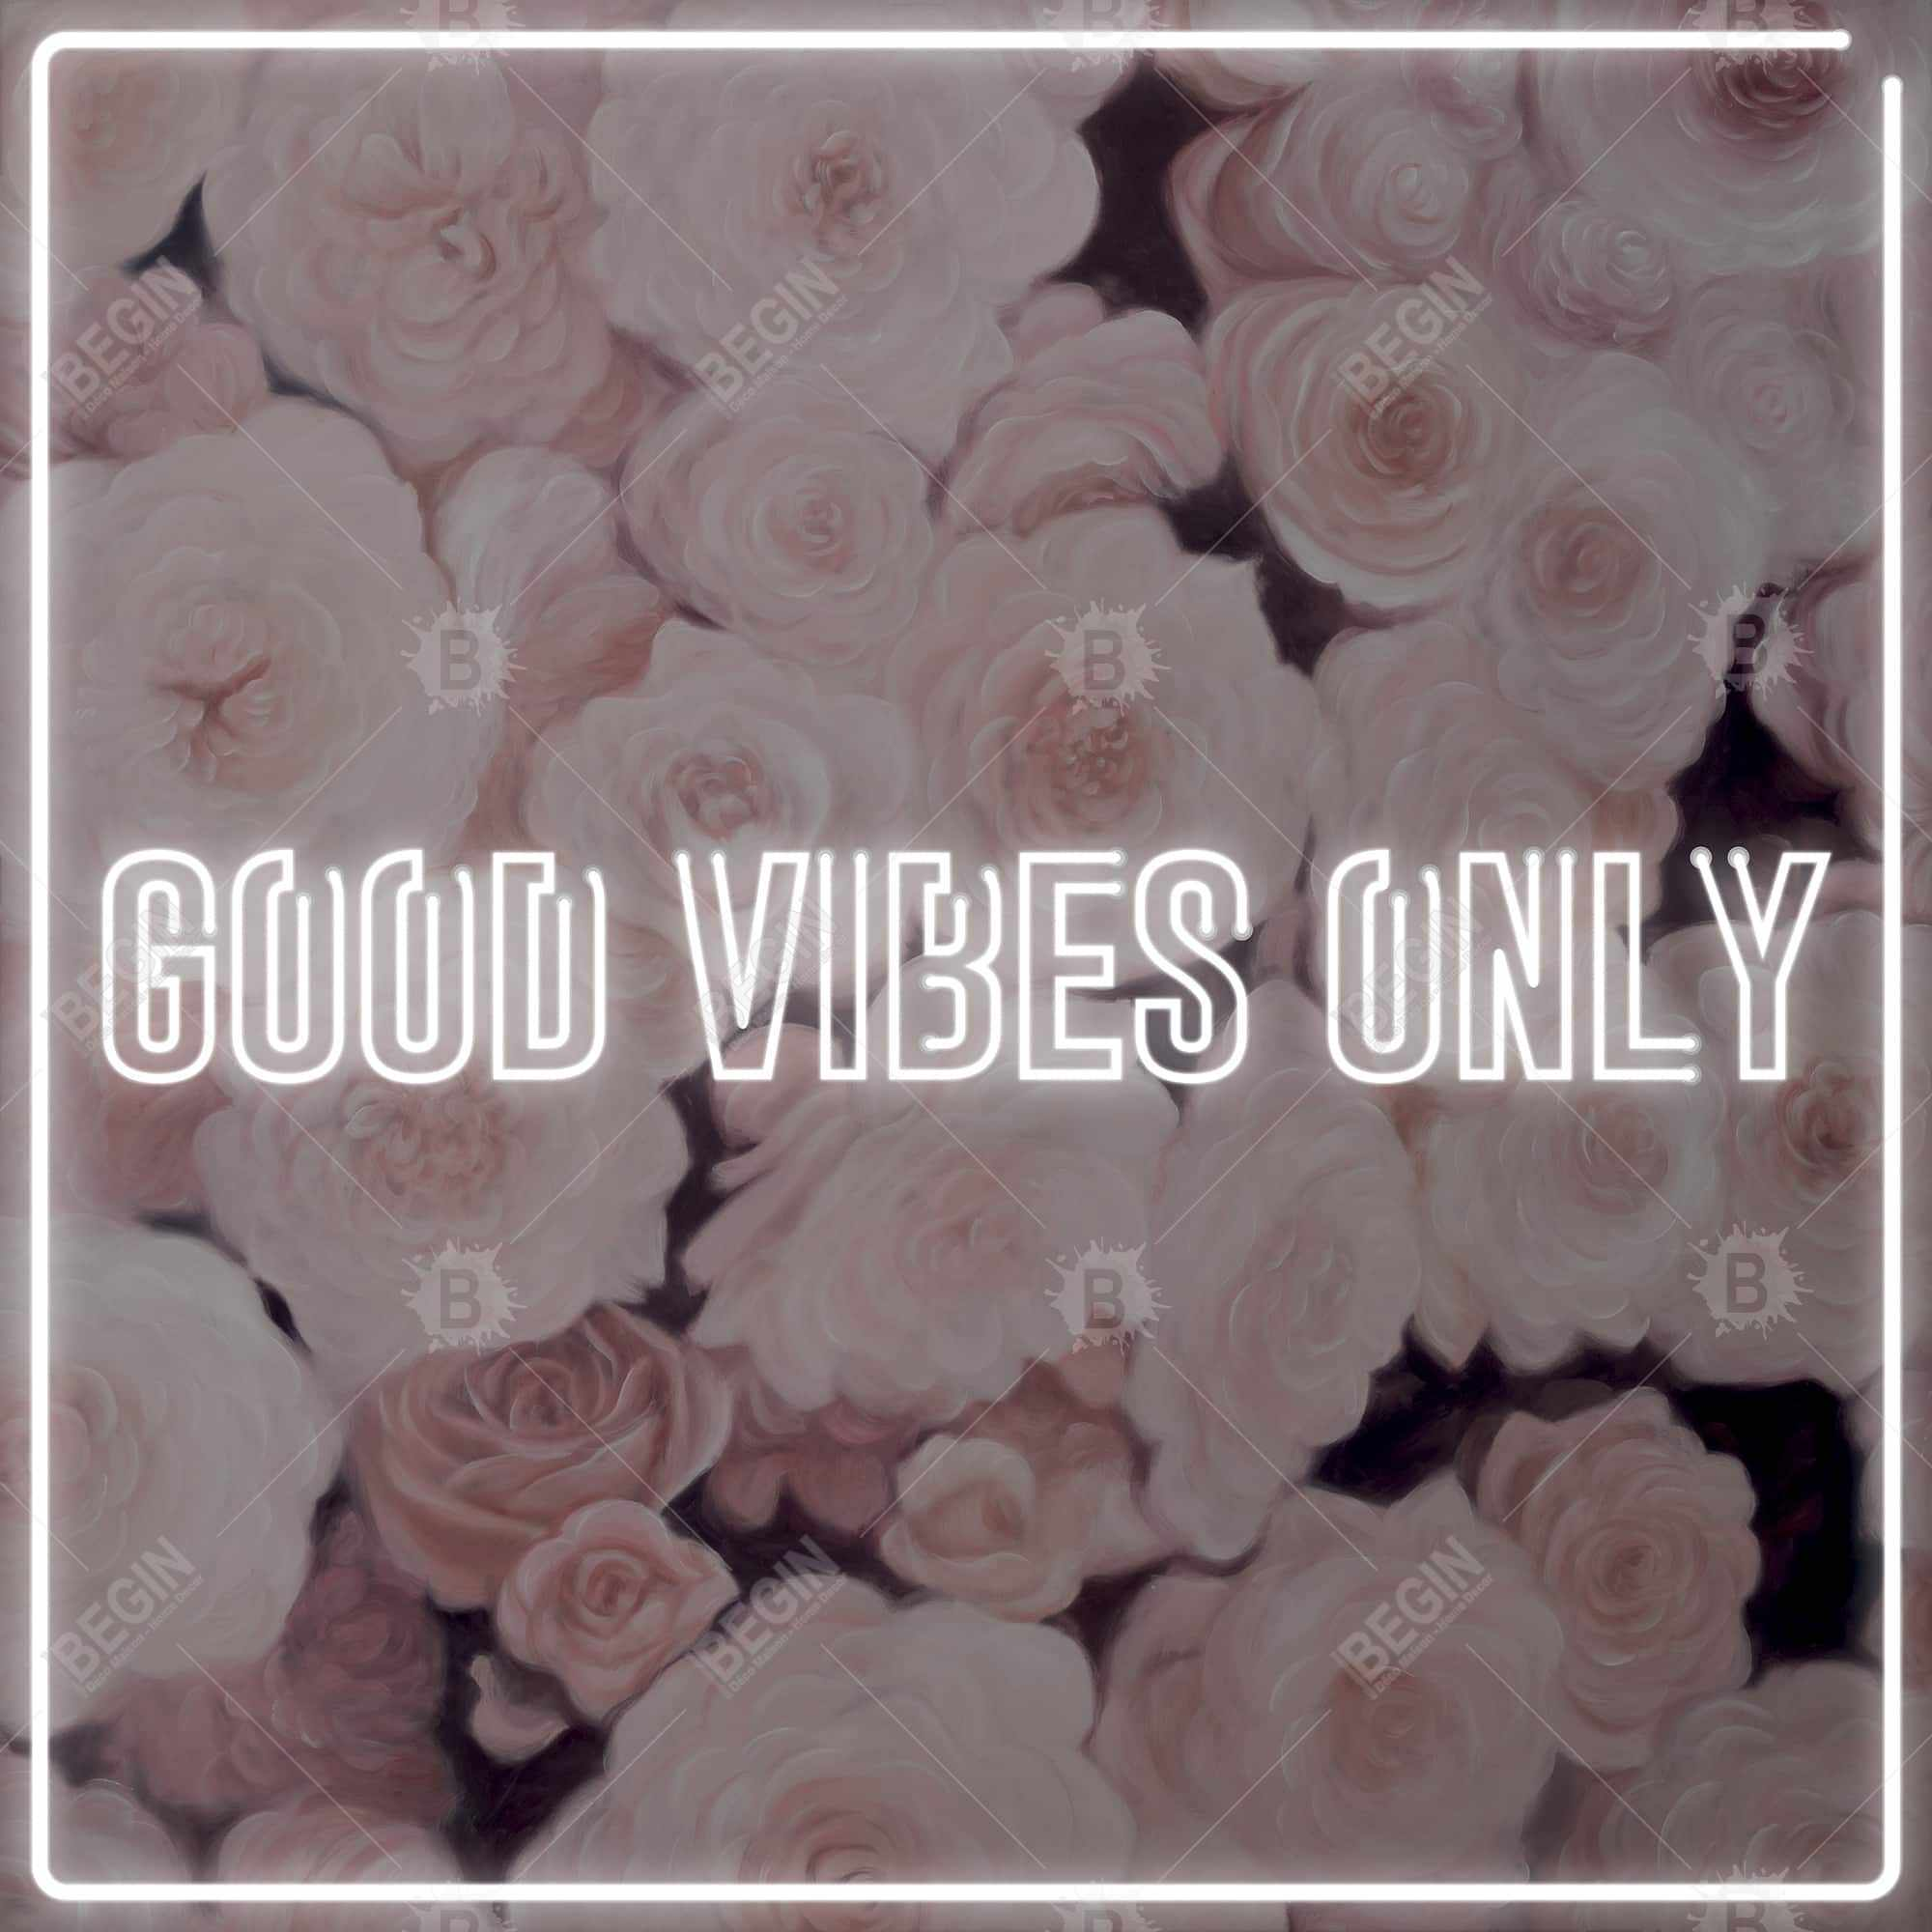 Good vibes only - roses